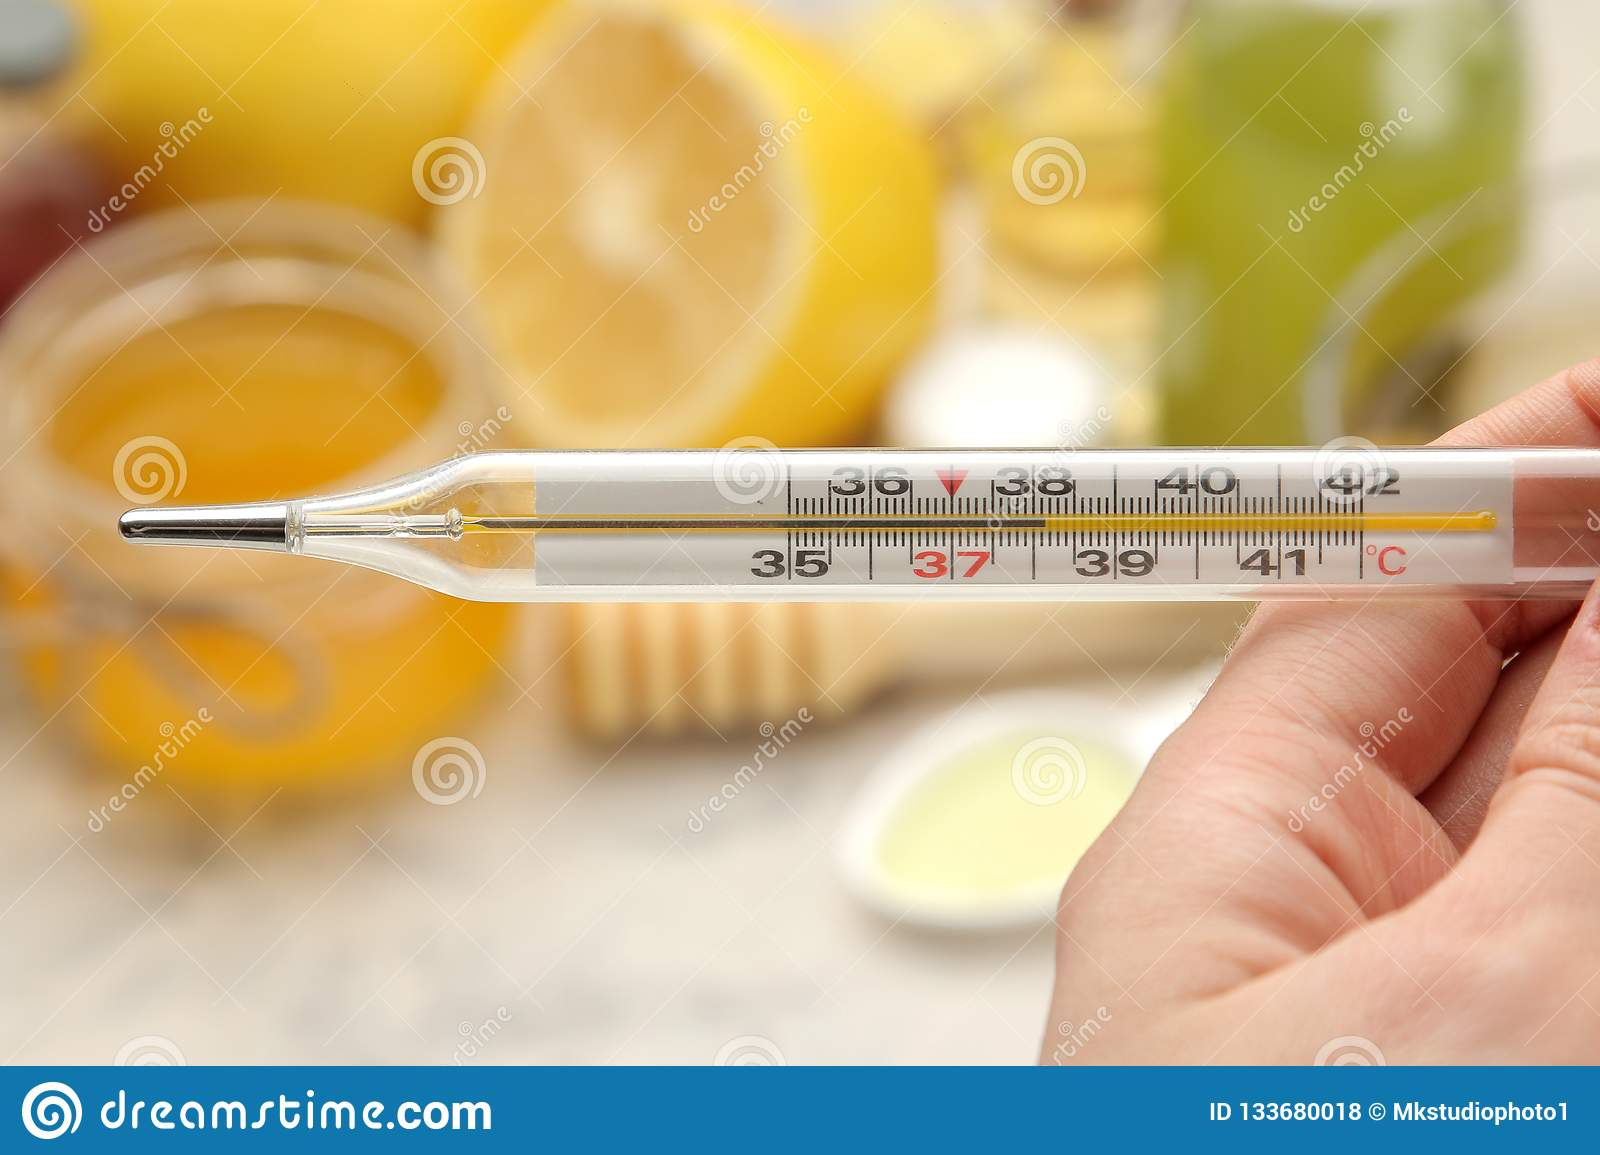 Thermometer Kru various medicines for flu and cold remedies on a white wooden table .. Cold. diseases. cold. flu